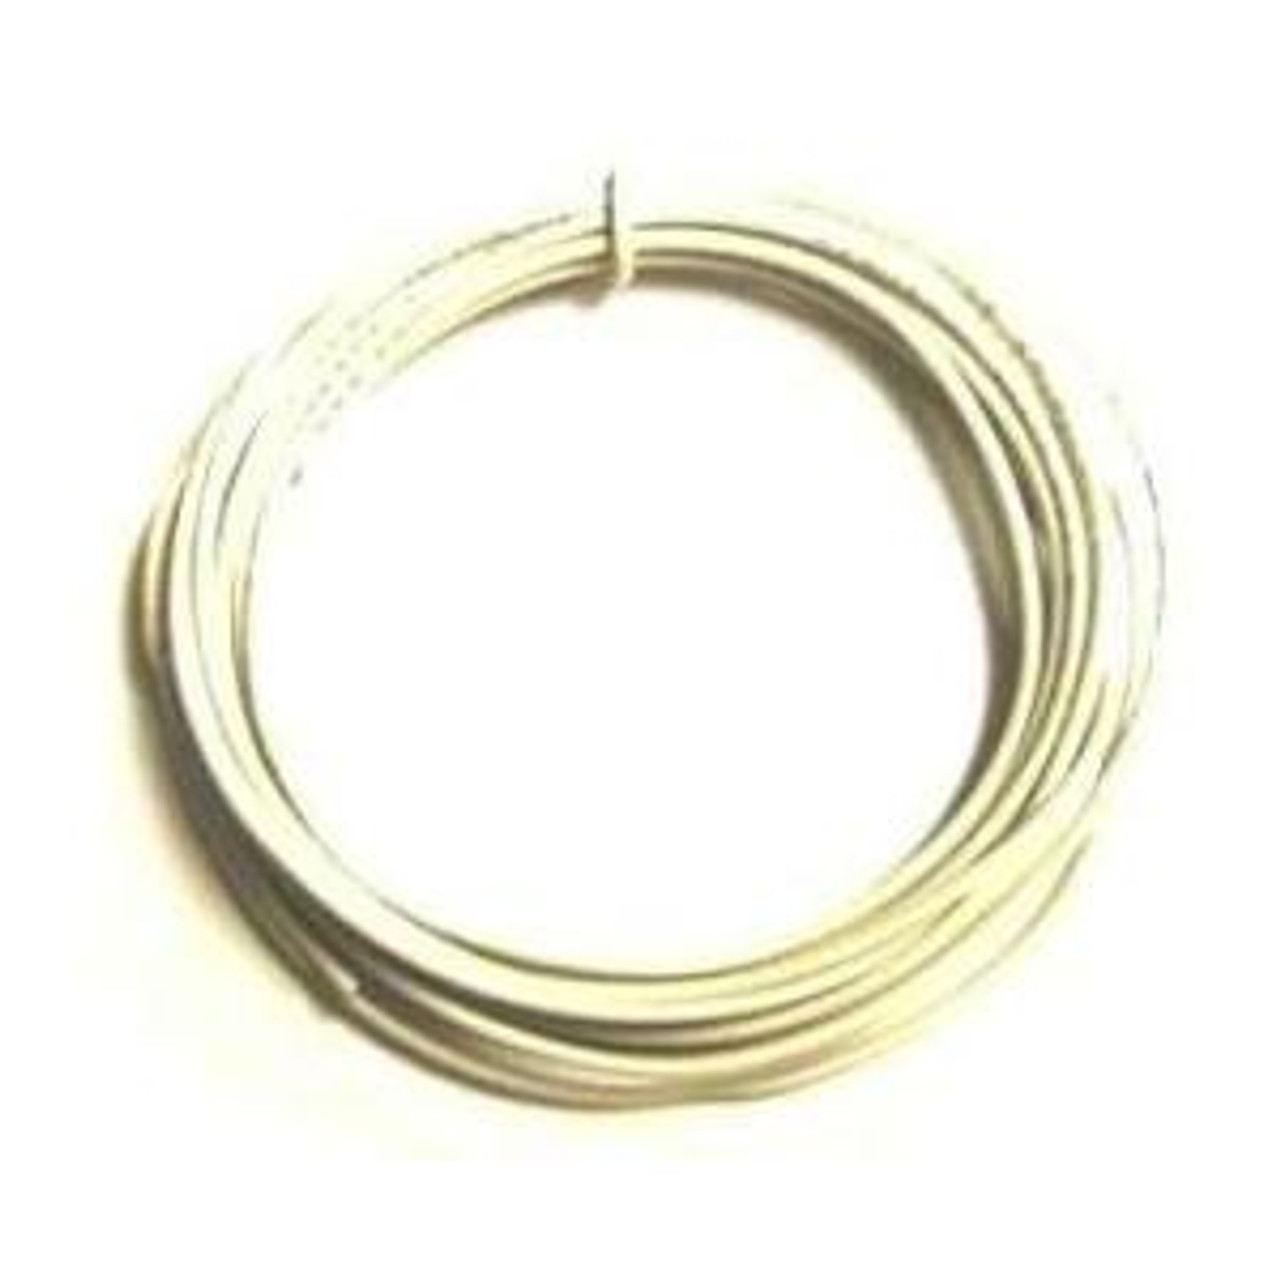 Solid Core 22 Gauge Guitar Circuit Wire-White